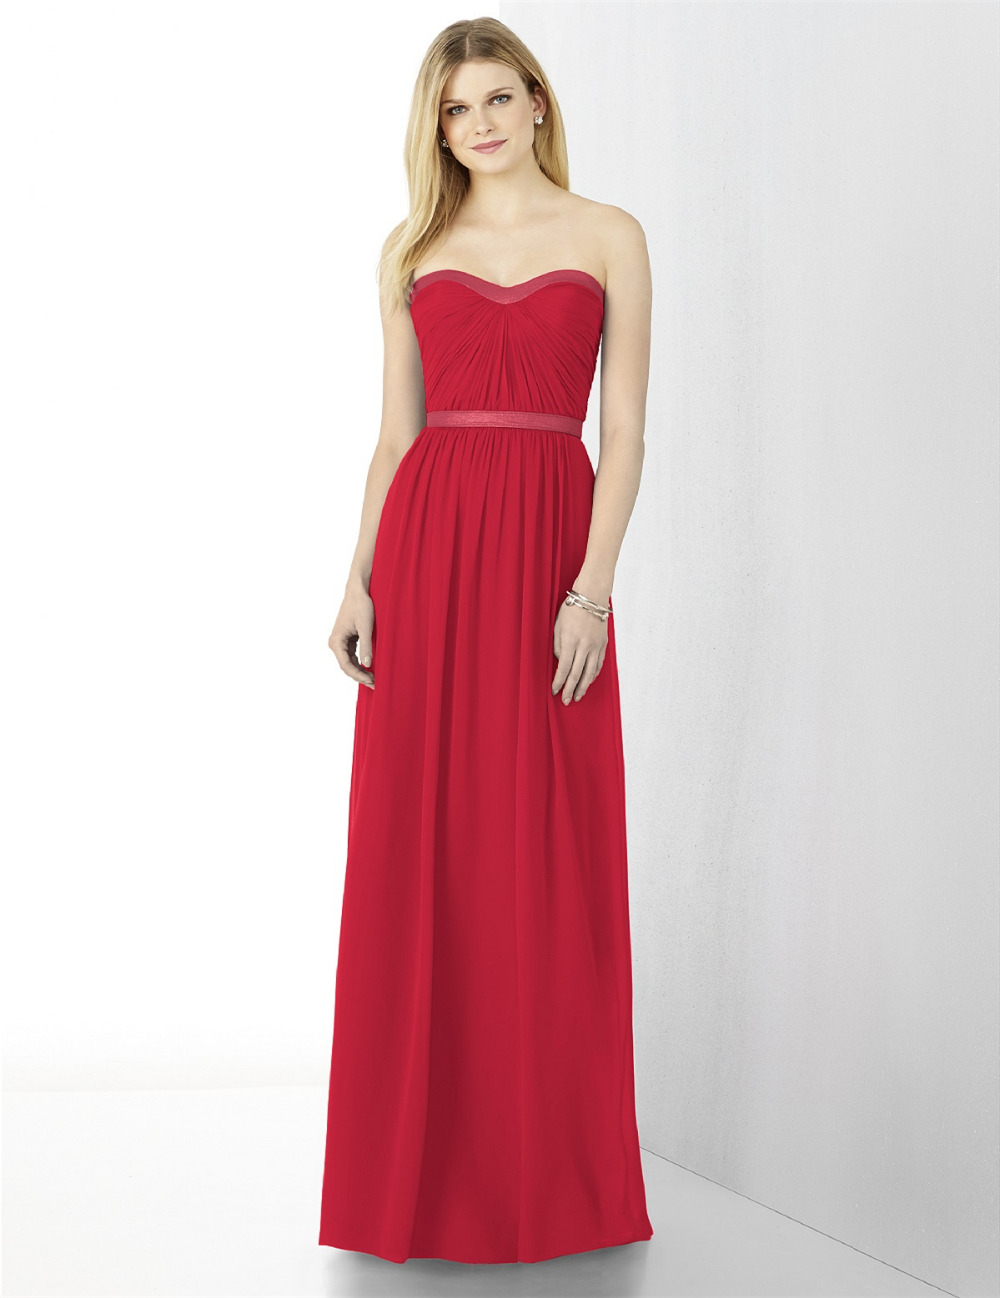 Red long empire plus size bridesmaid dresses 2015 cheap for Plus size wedding party dresses